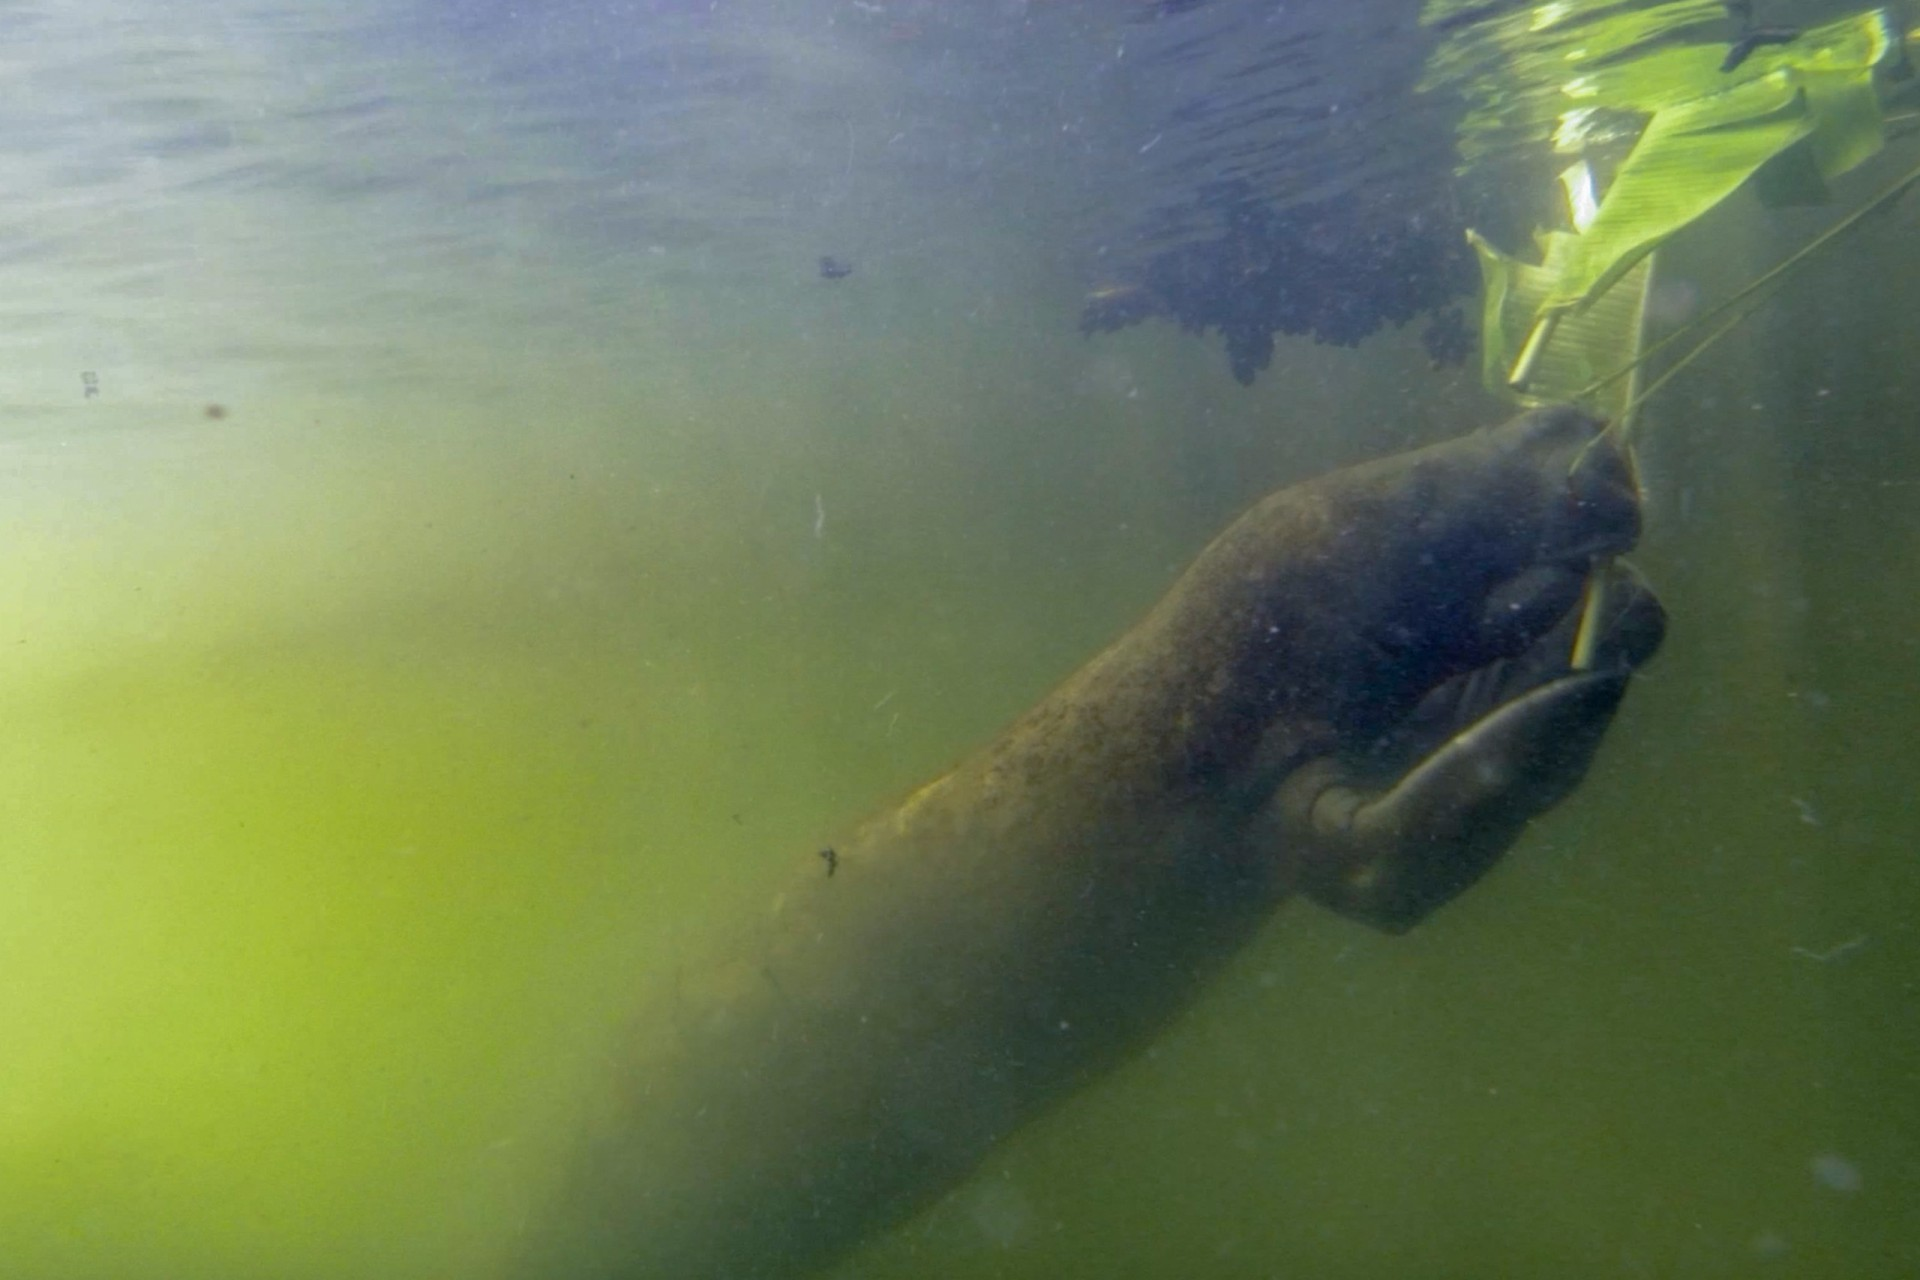 Underwater Manatee chatter may aid in their conservation